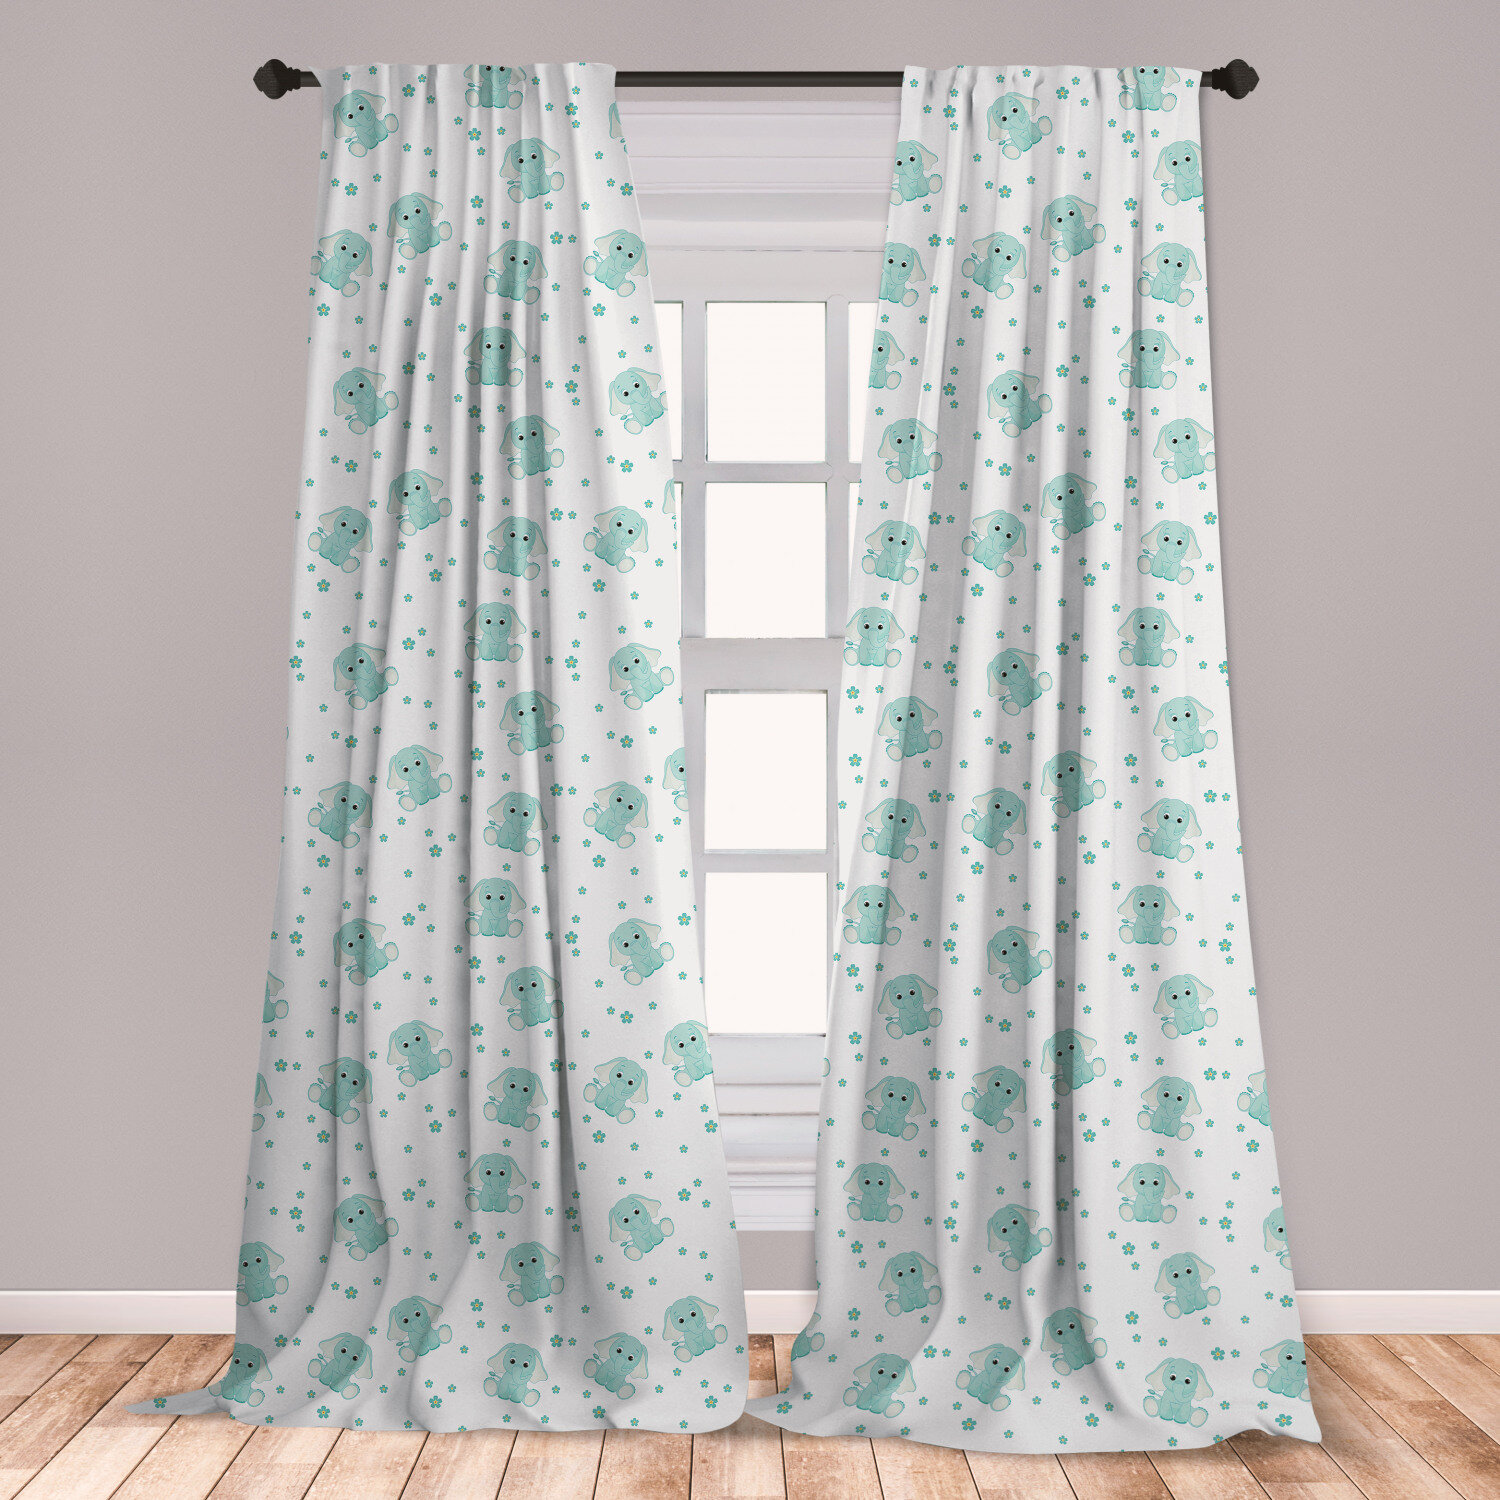 Picture of: East Urban Home Ambesonne Elephant Curtains Baby Animal Characters With Long Ears And Daisy Blossoms Kids Window Treatments 2 Panel Set For Living Room Bedroom Decor 56 X 63 Mint Green White